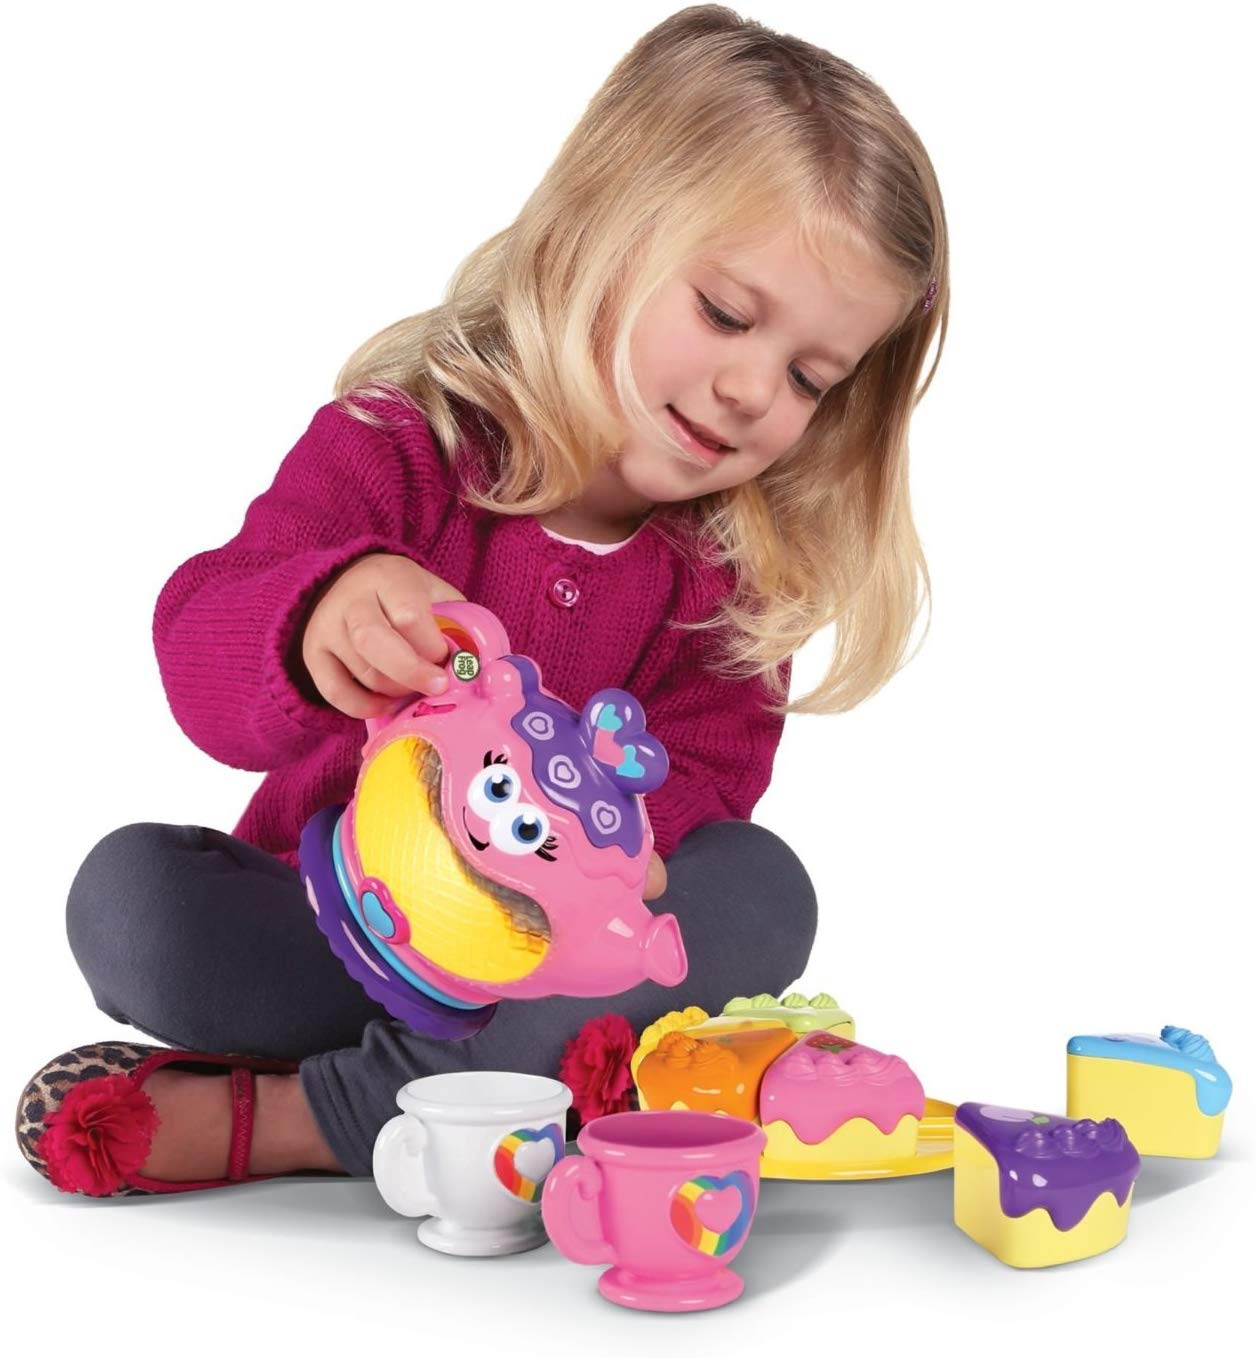 The Best Gifts For 2 Year Old Girls - According To -8908